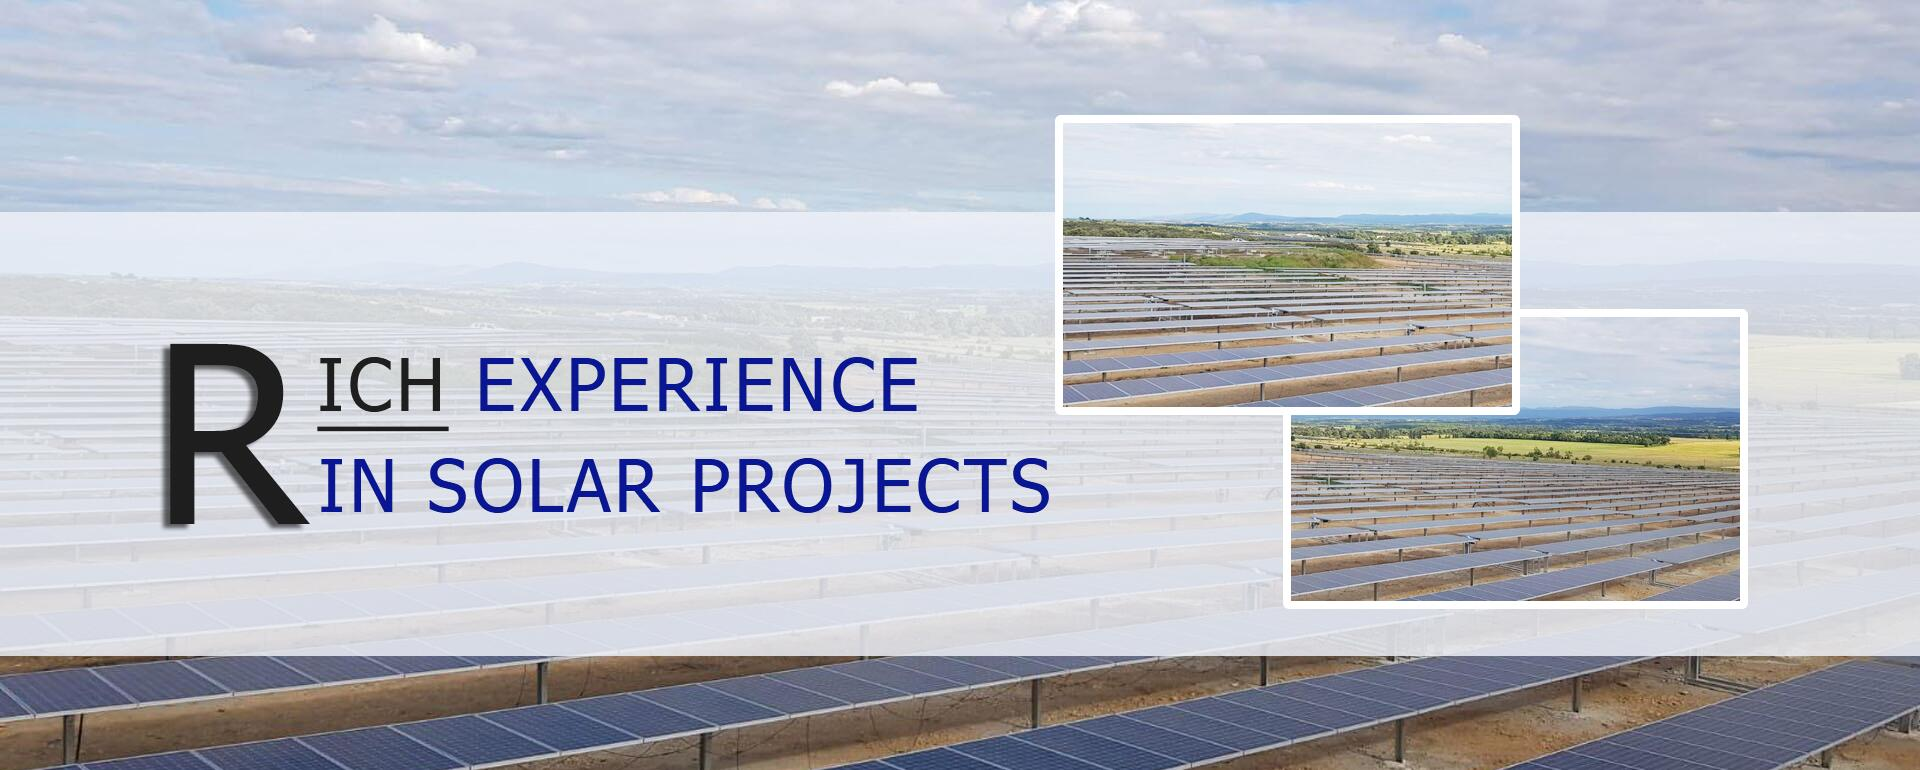 rich experience in solar projects section steel